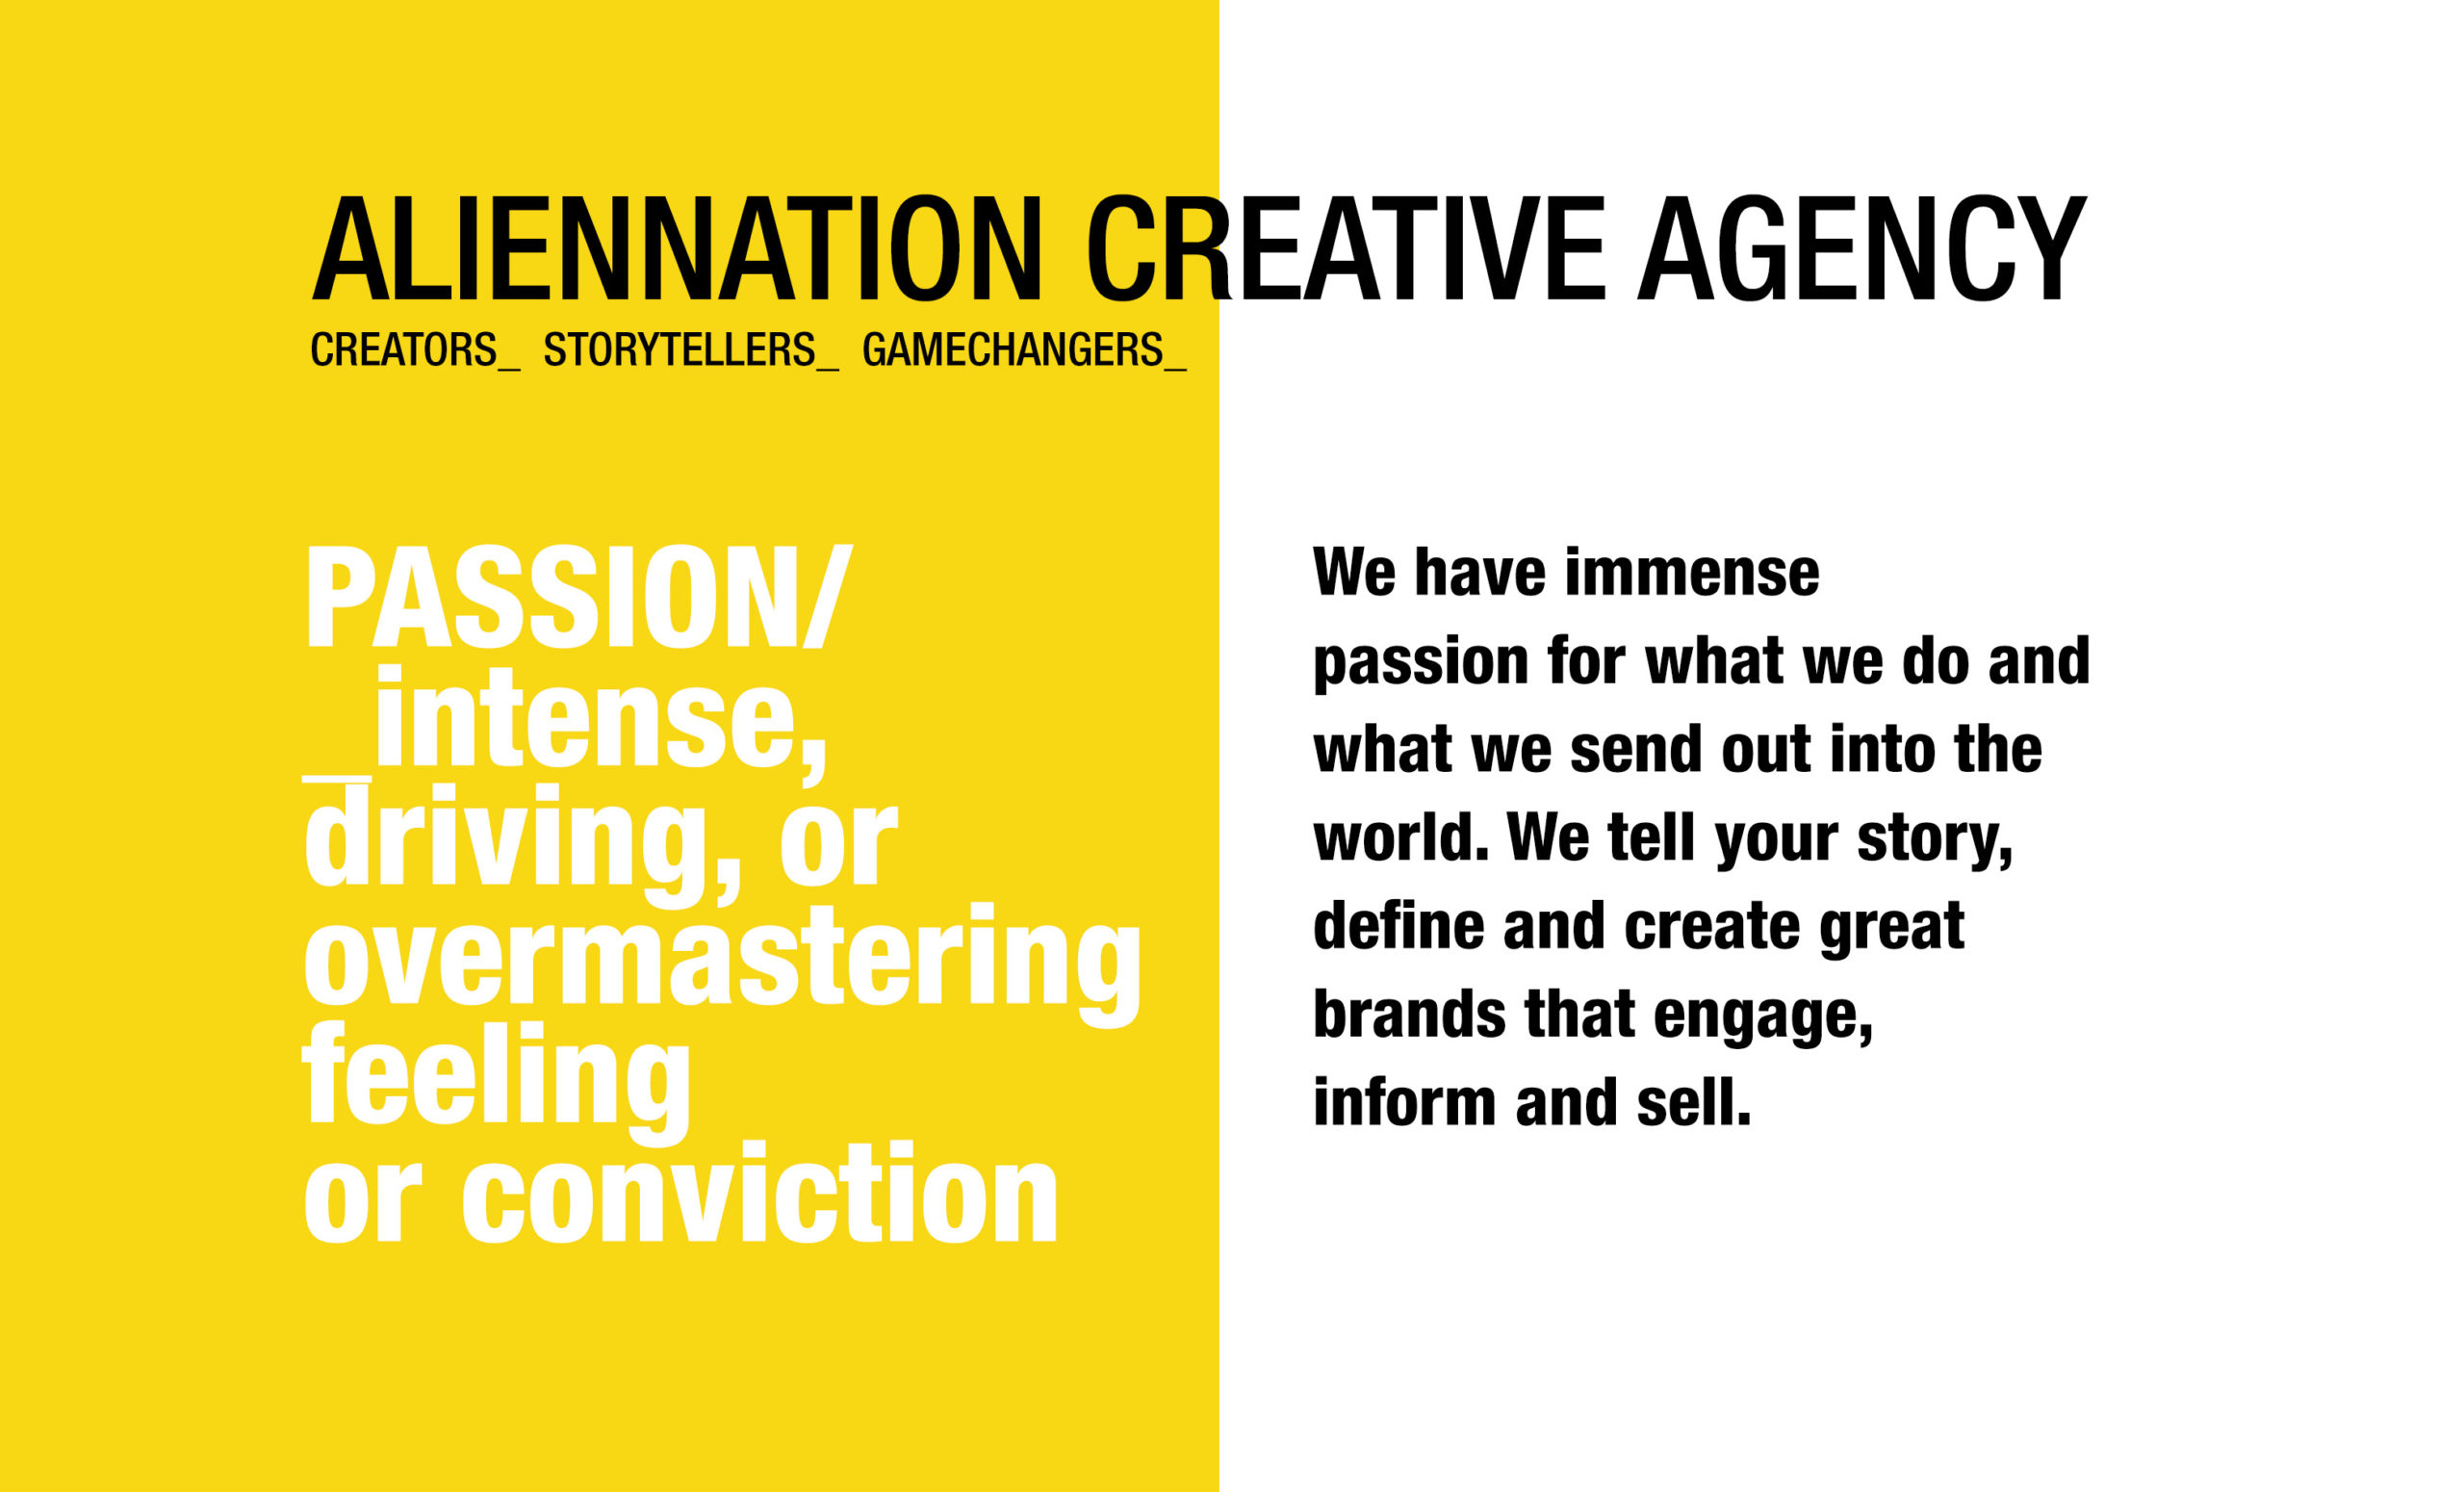 Aliennation Creative Agency South Africa